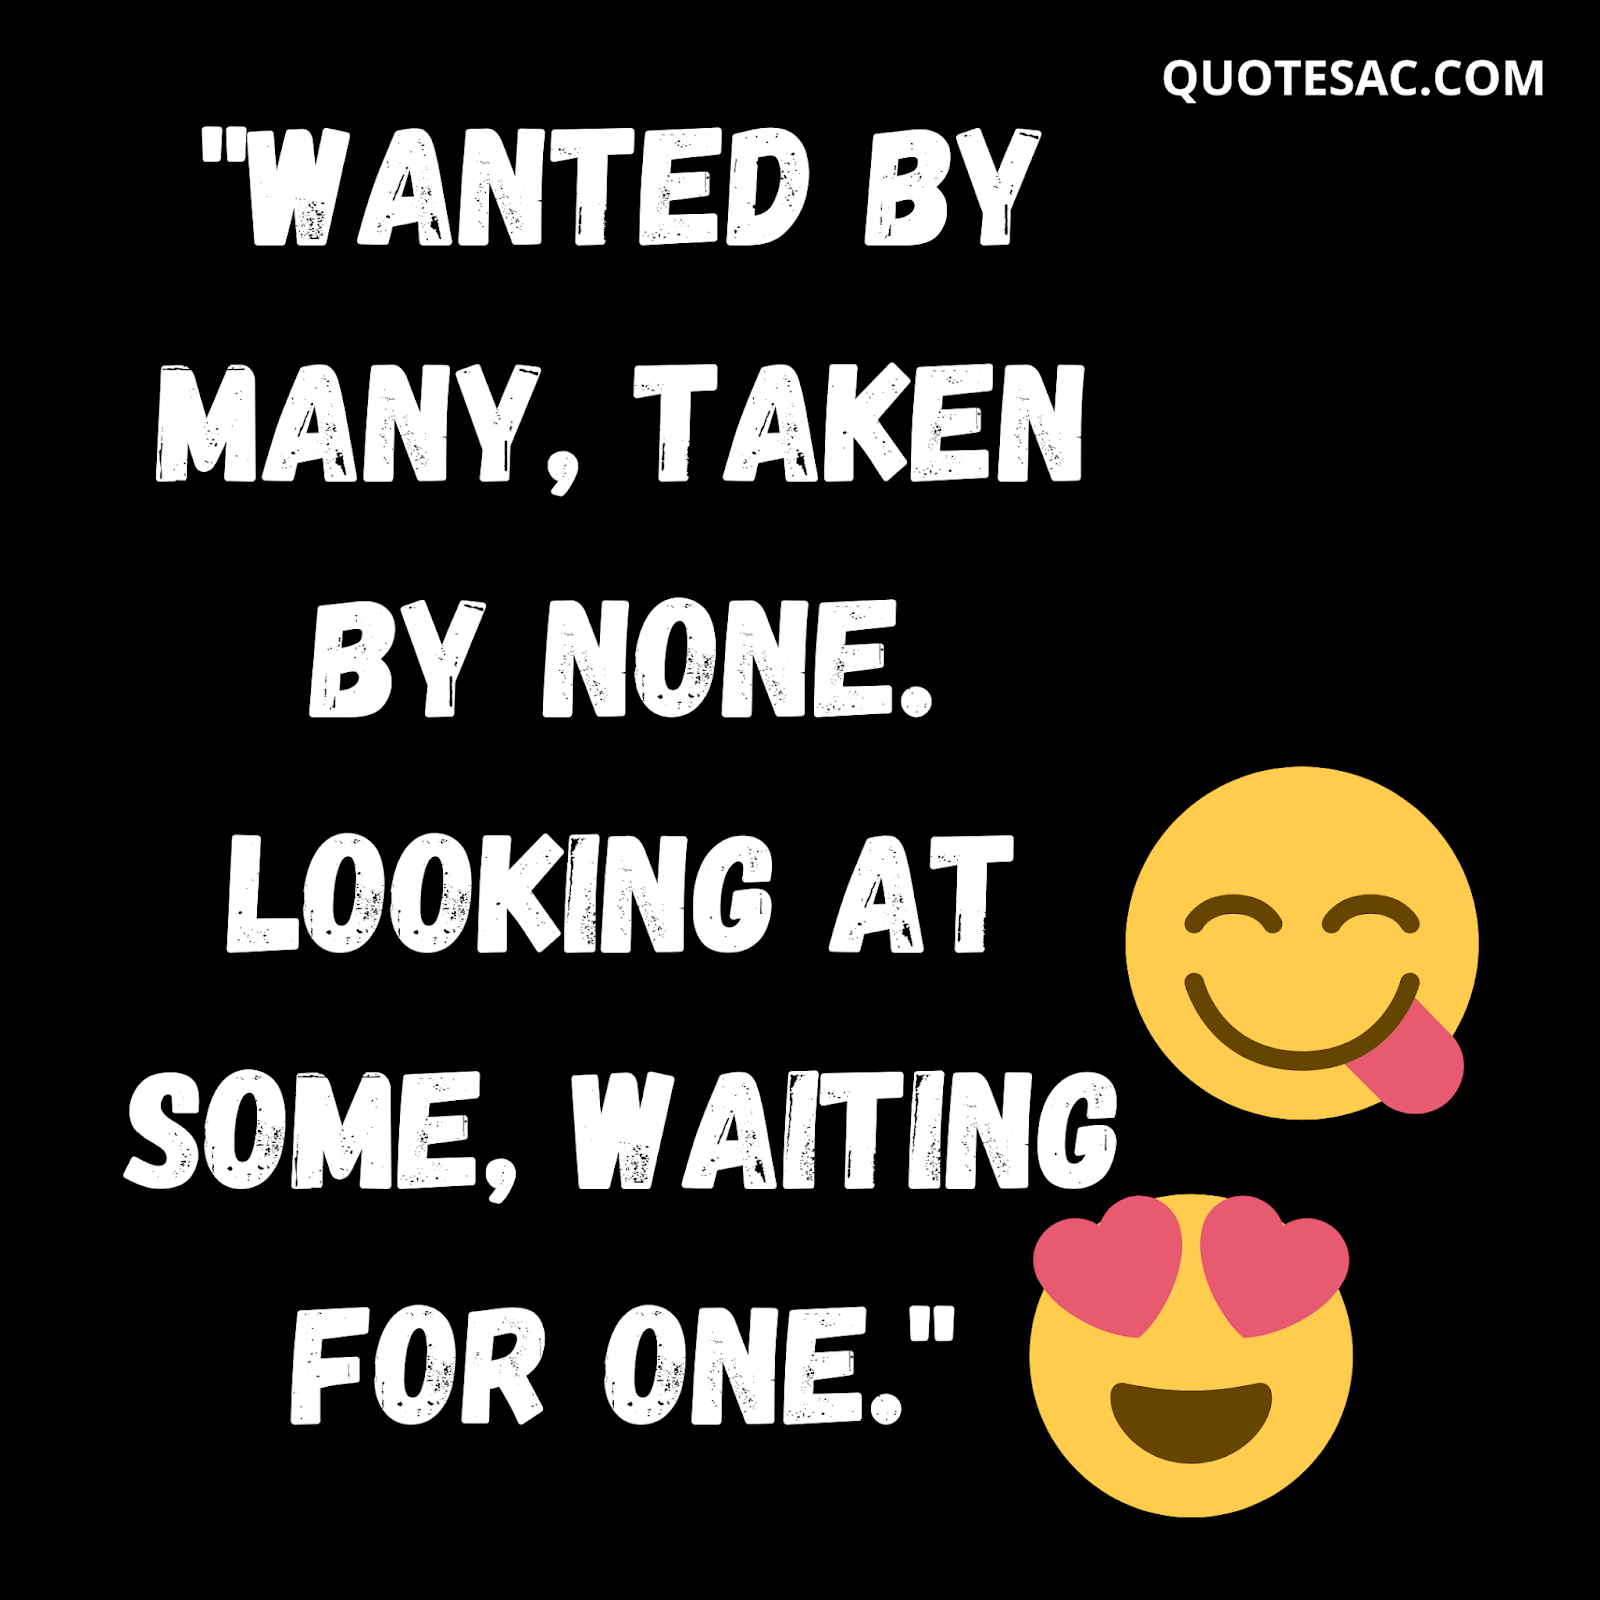 Latest Whatsapp Status For Single Girls In English 2020 Single Girl Quotes Whatsapp Status Quotes Girl Quotes